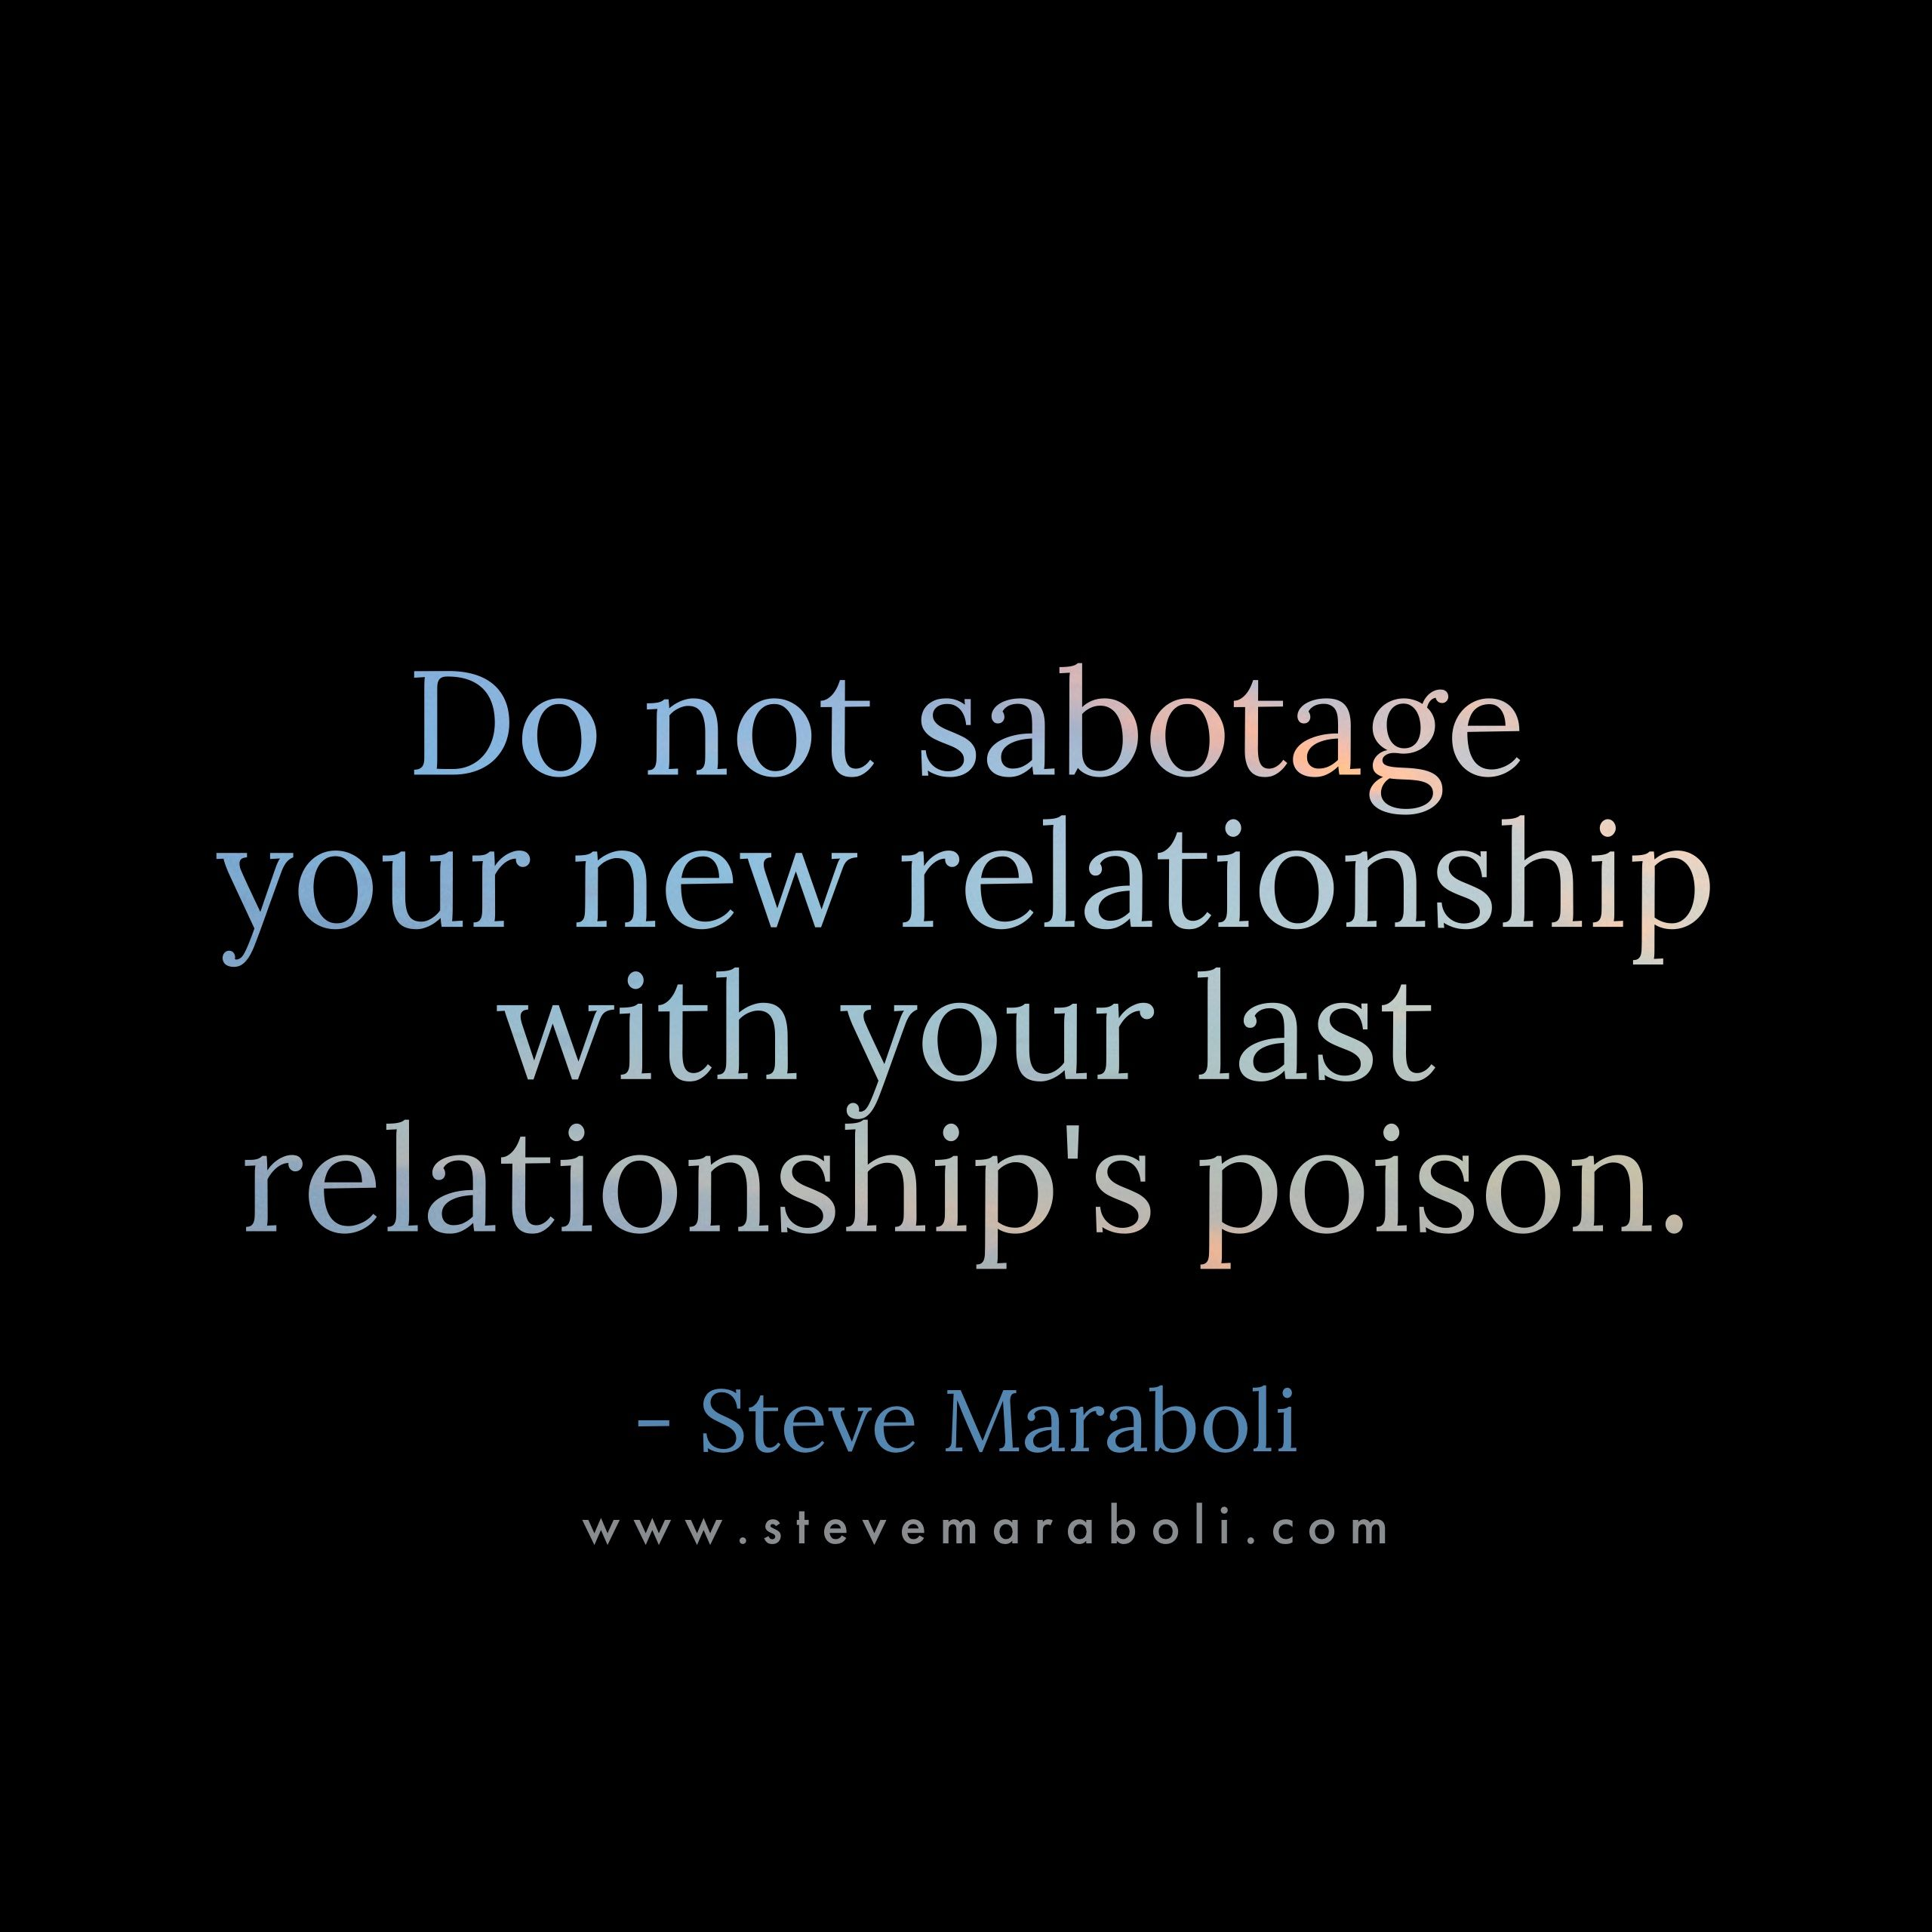 New Relationship Quotes Do Not Sabotage Your New Relationship With Your Last